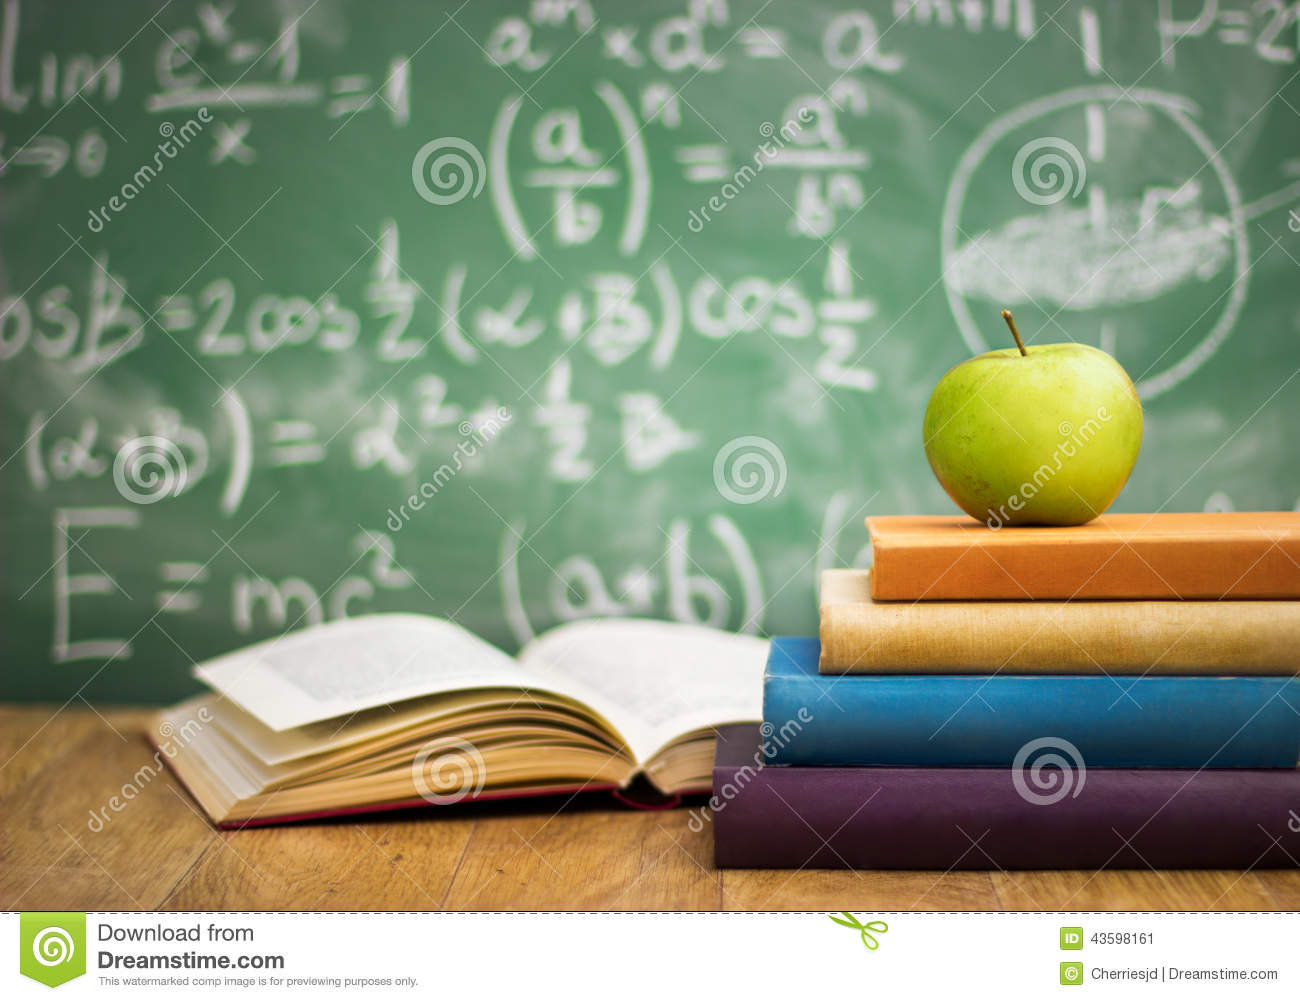 School Books With Apple On Desk Stock Image  Image 43598161